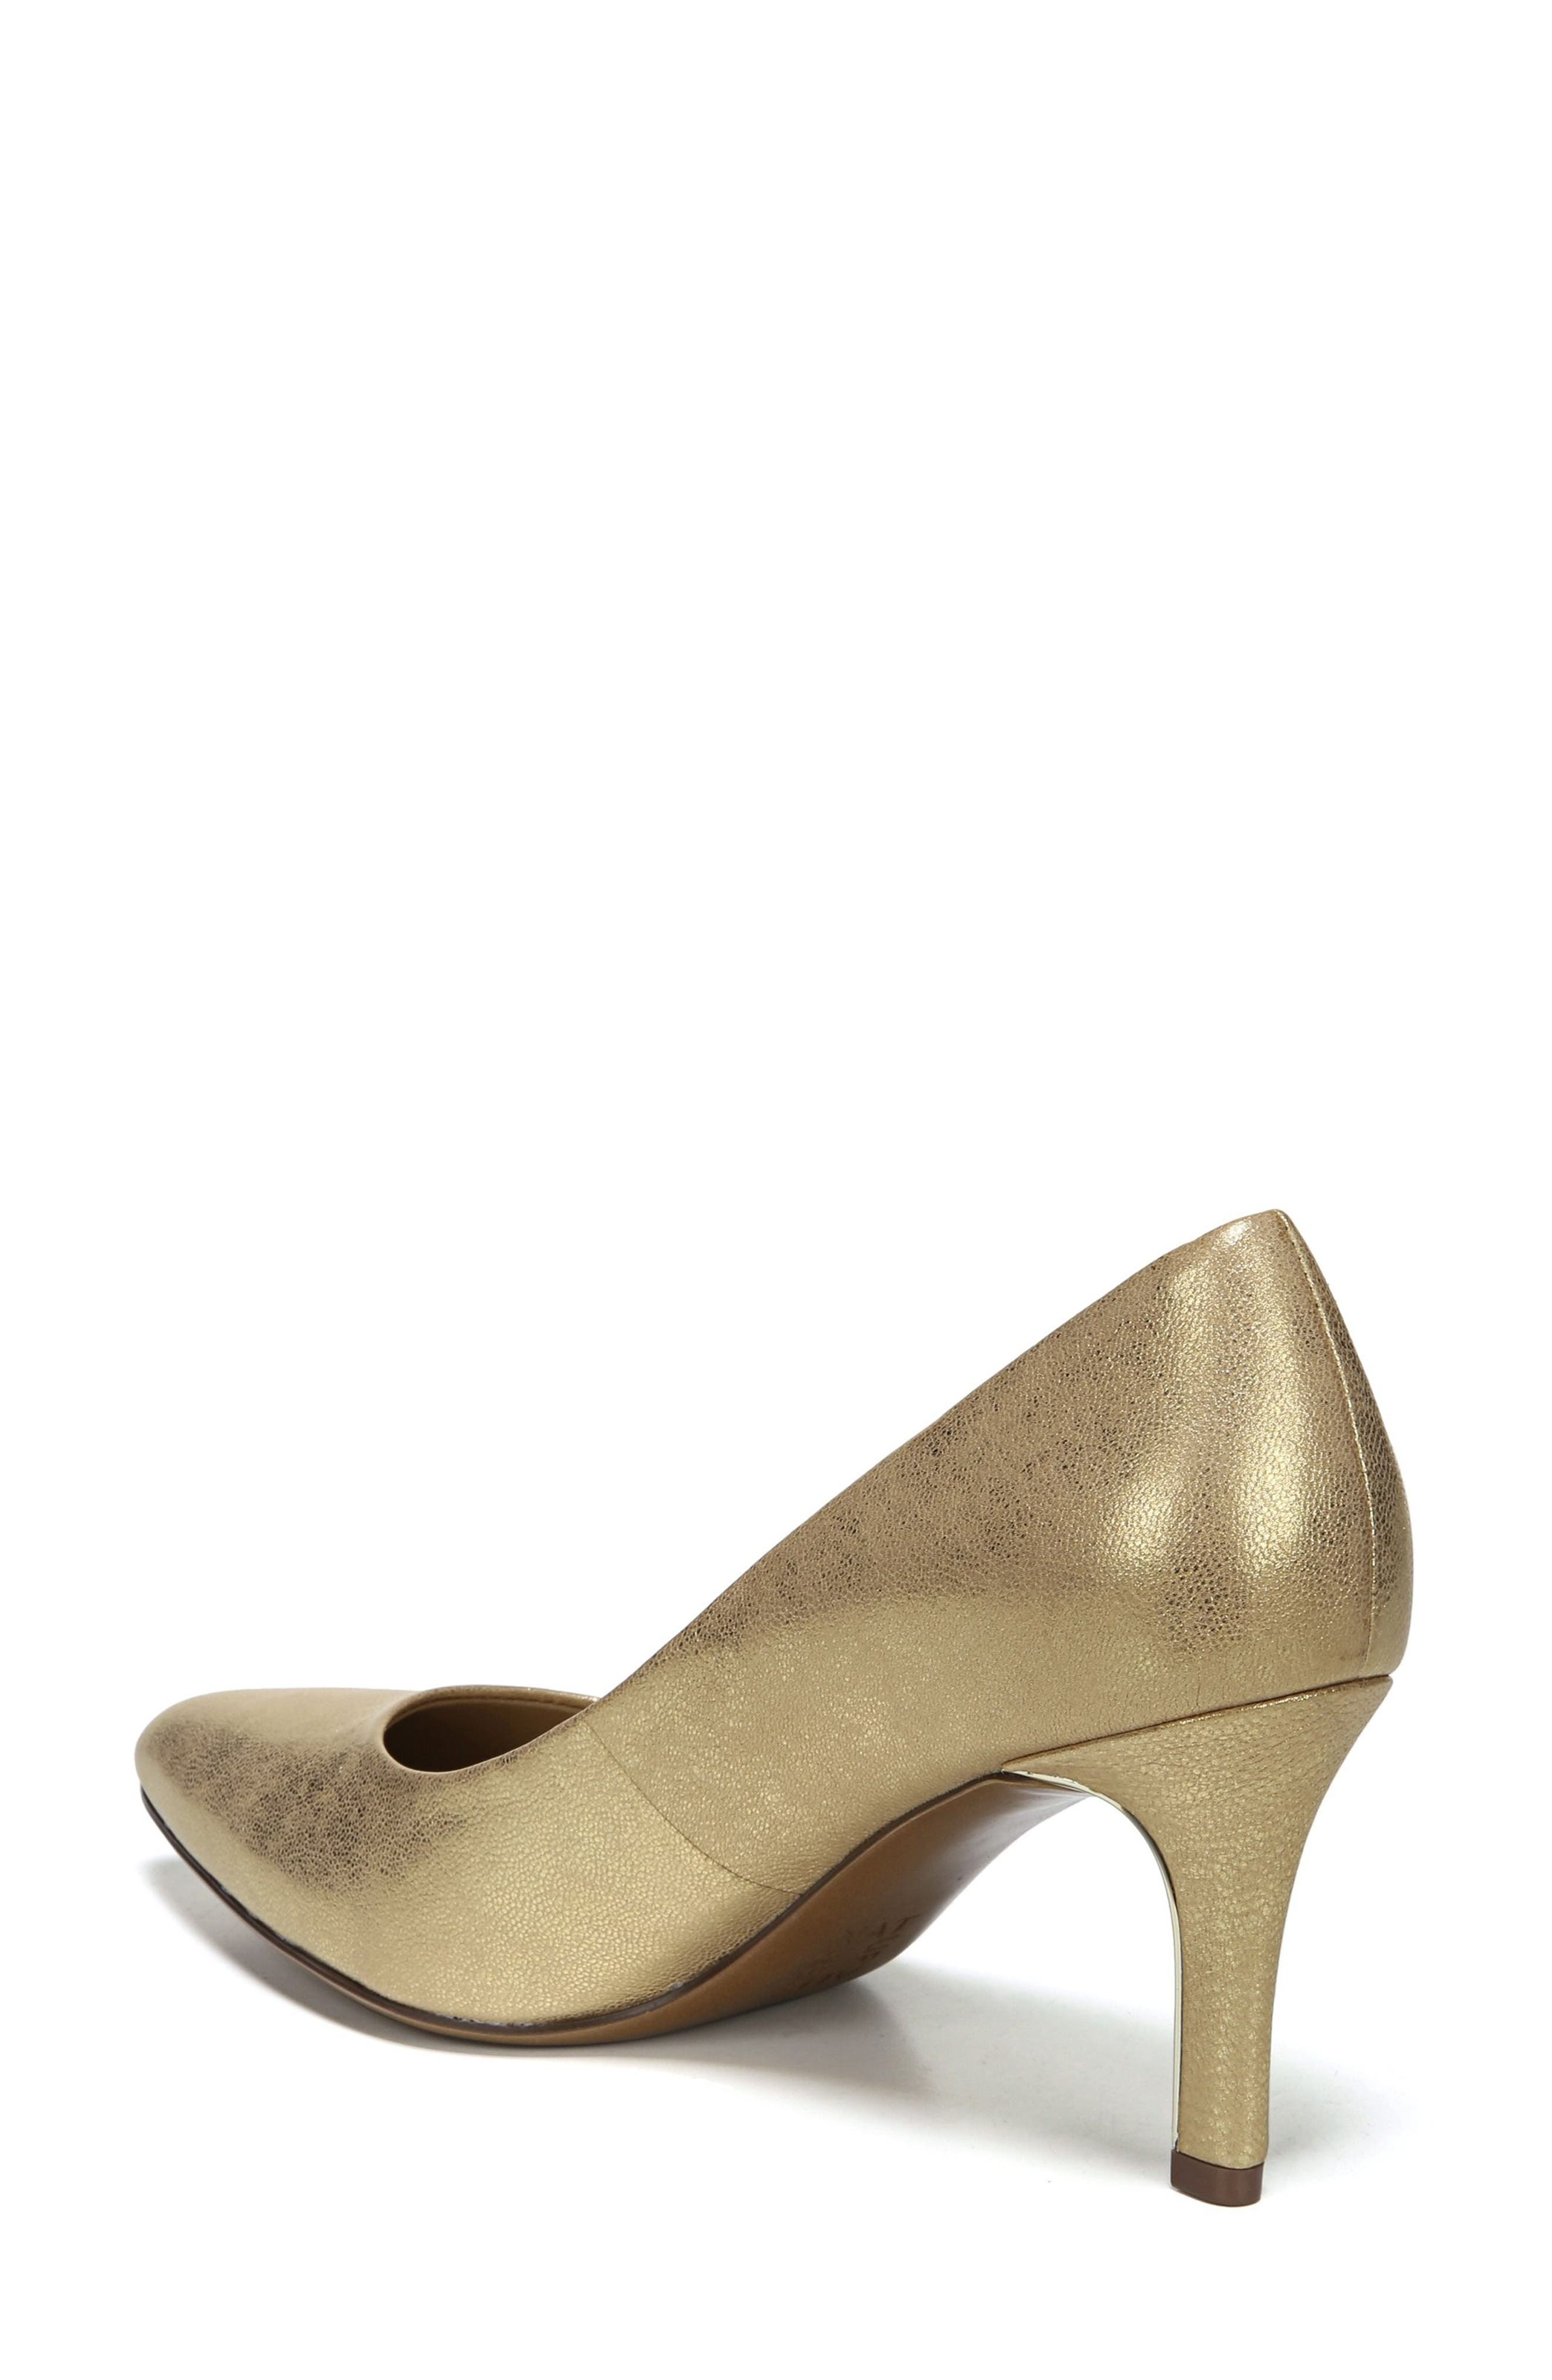 Natalie Pointy Toe Pump,                             Alternate thumbnail 2, color,                             GOLD LEATHER